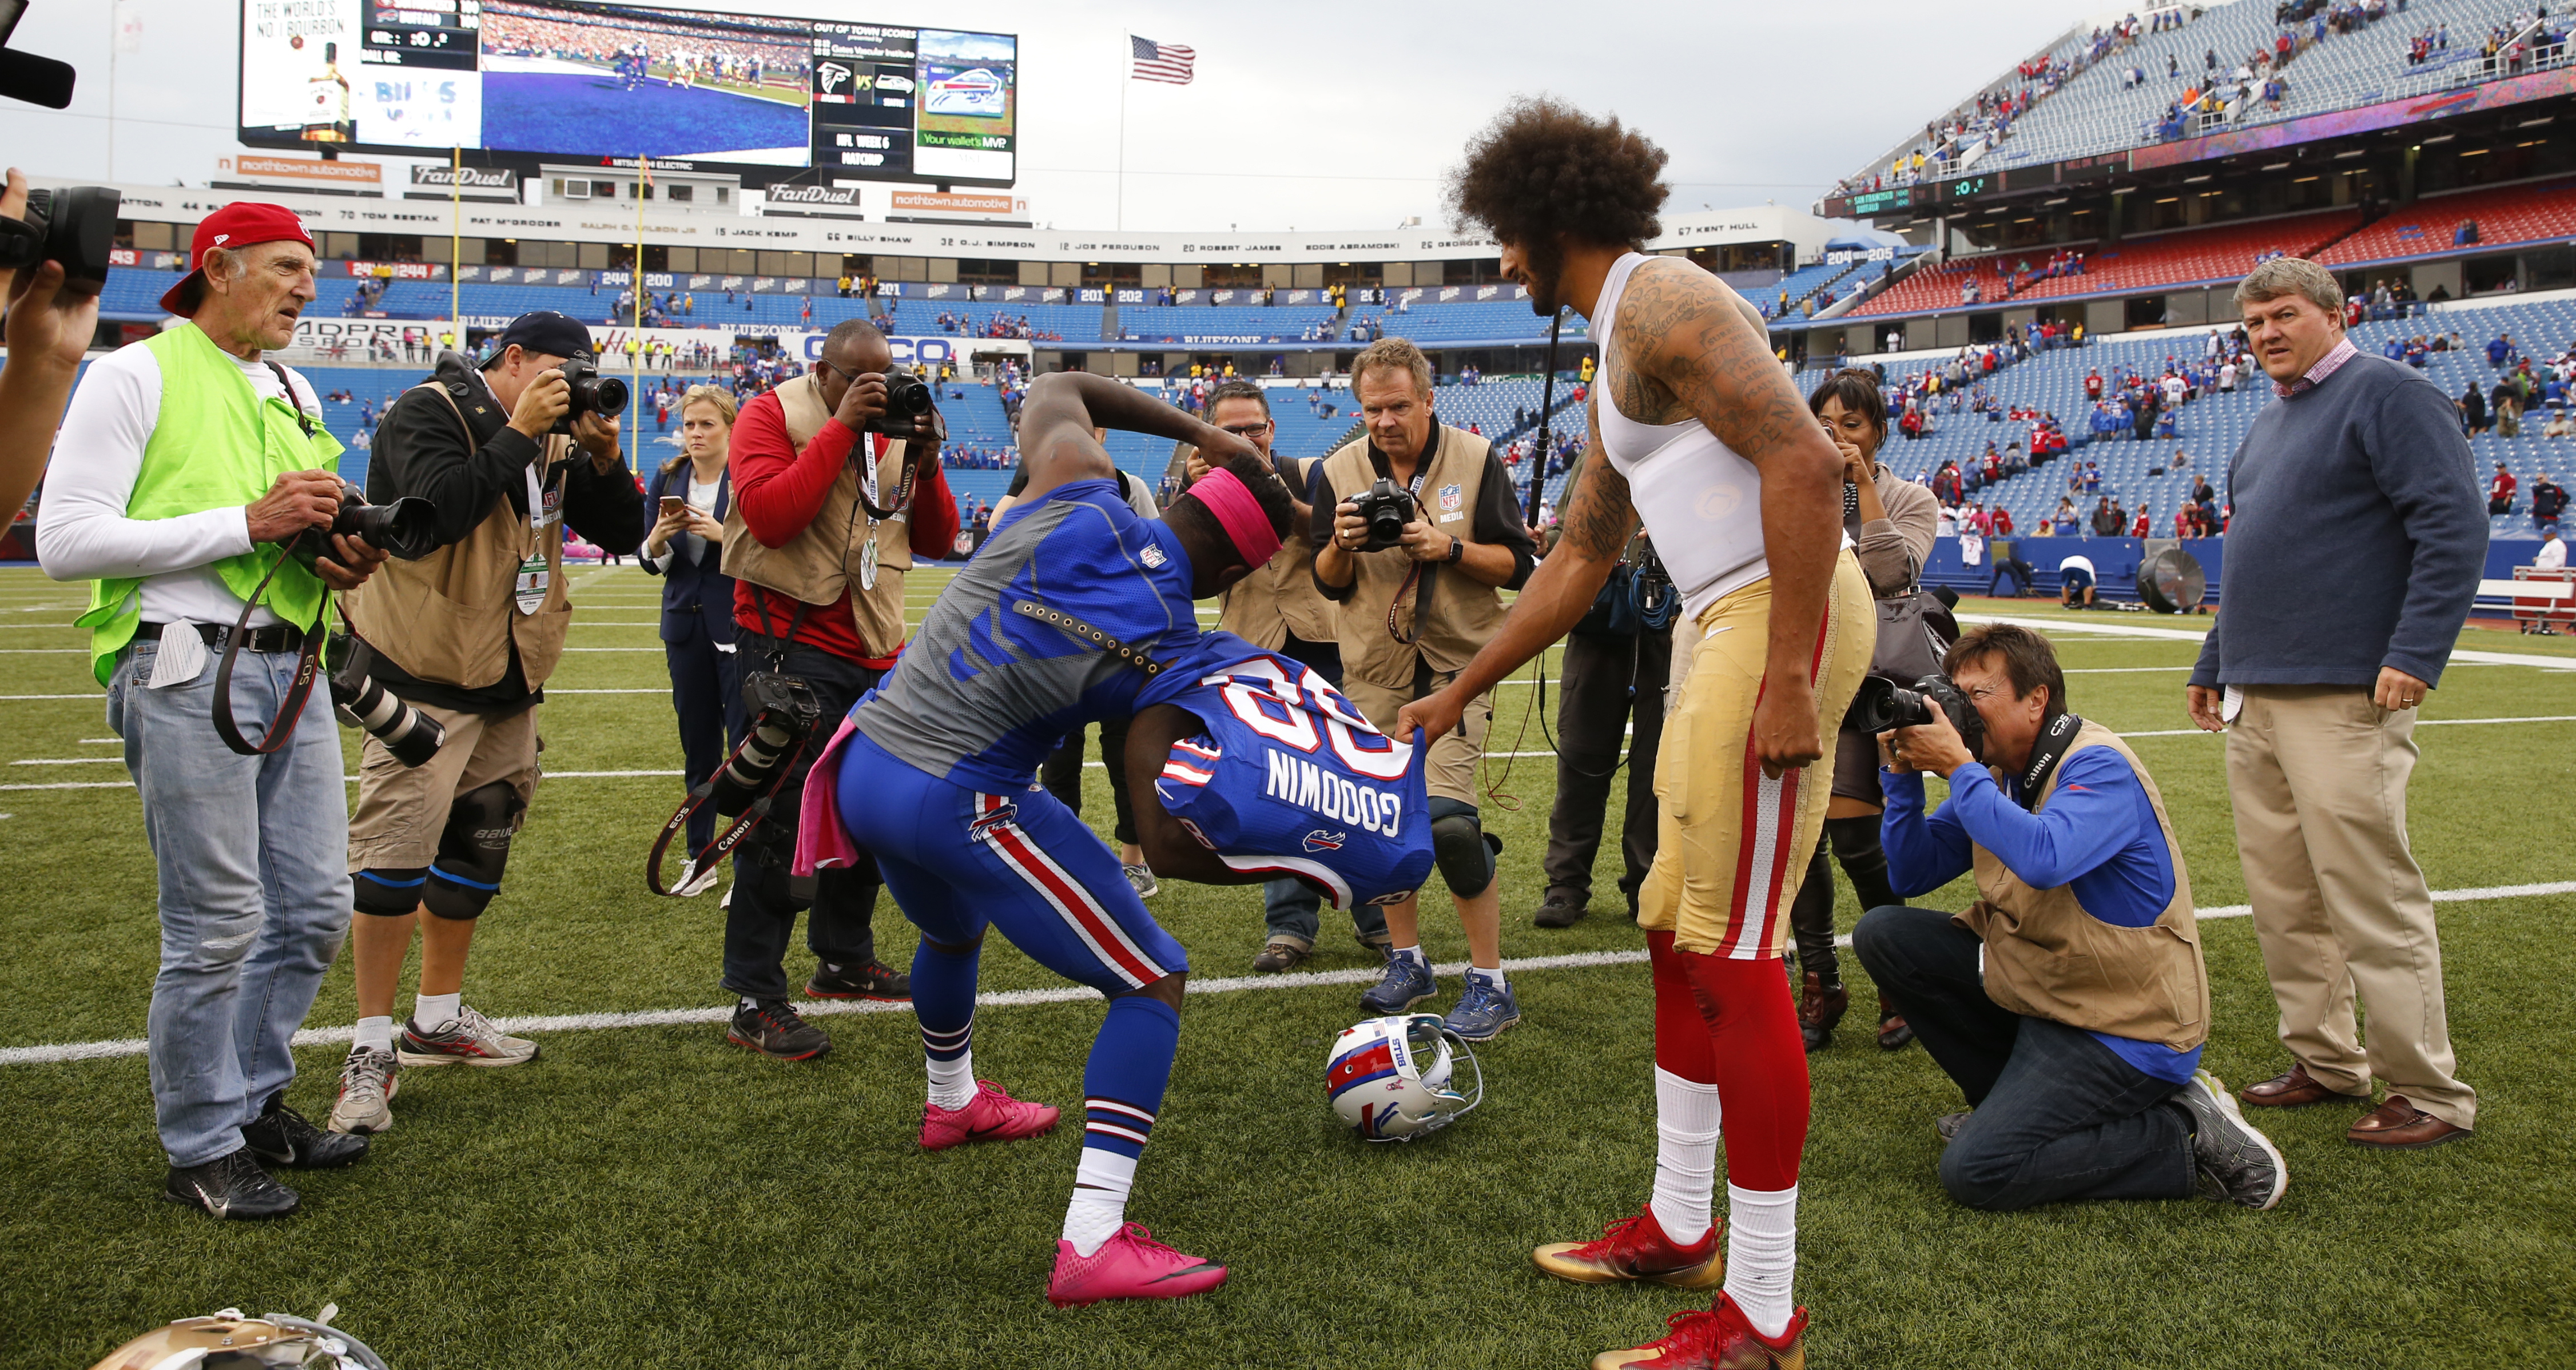 Bills wide receiver Marquise Goodwin and 49ers quarterback Colin Kaepernick trade jerseys after the game. (Harry Scull Jr./Buffalo News)